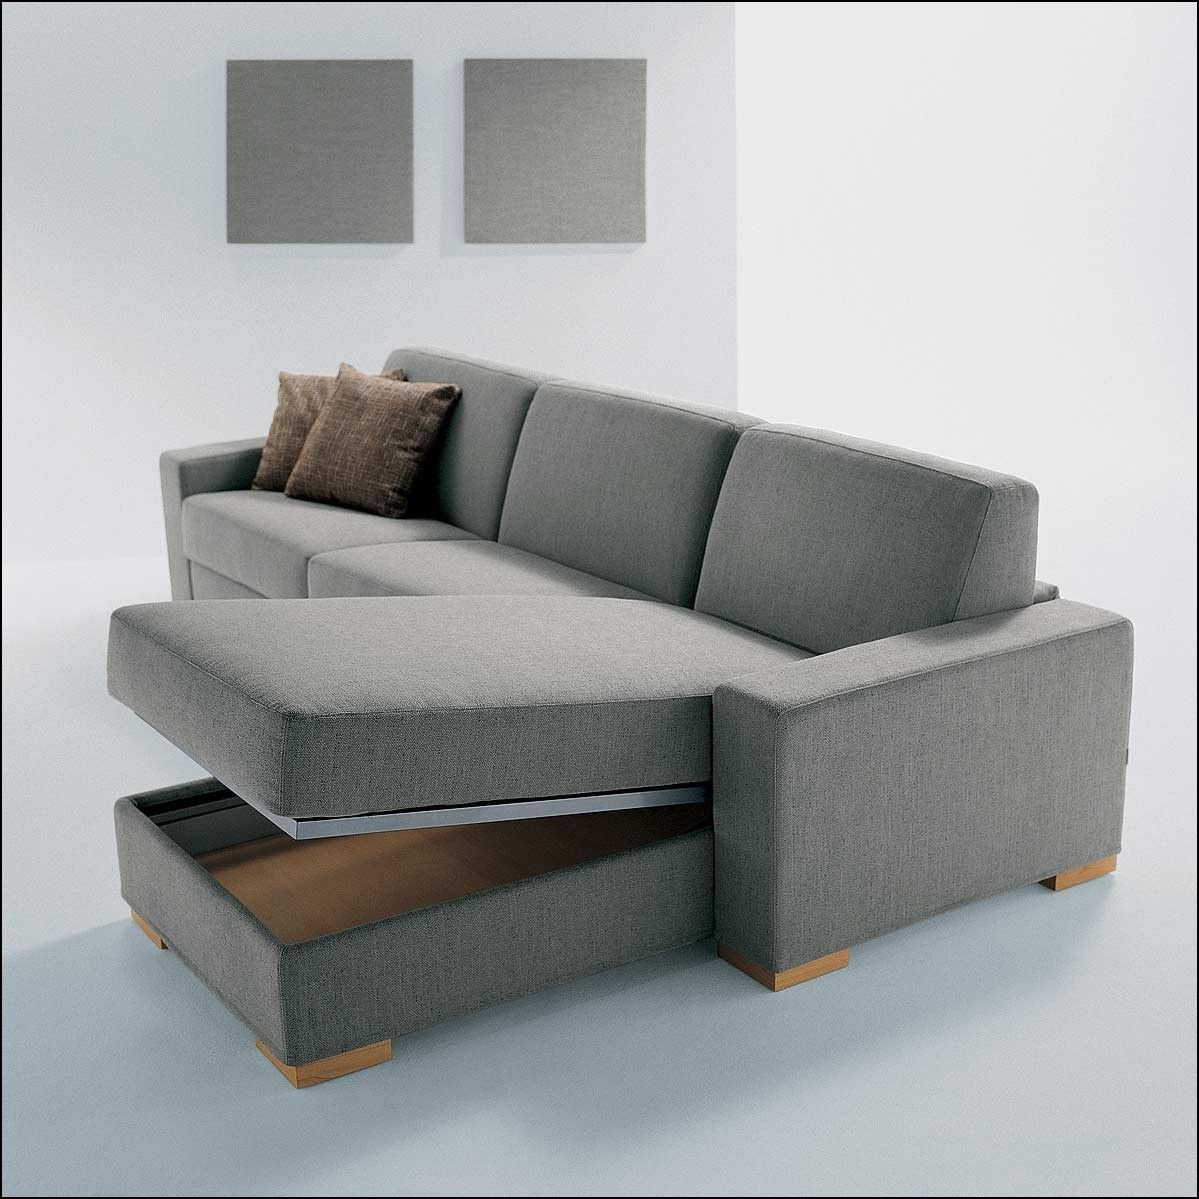 Sofa Bed for Bedroom Fresh L Shaped Couch with Storage